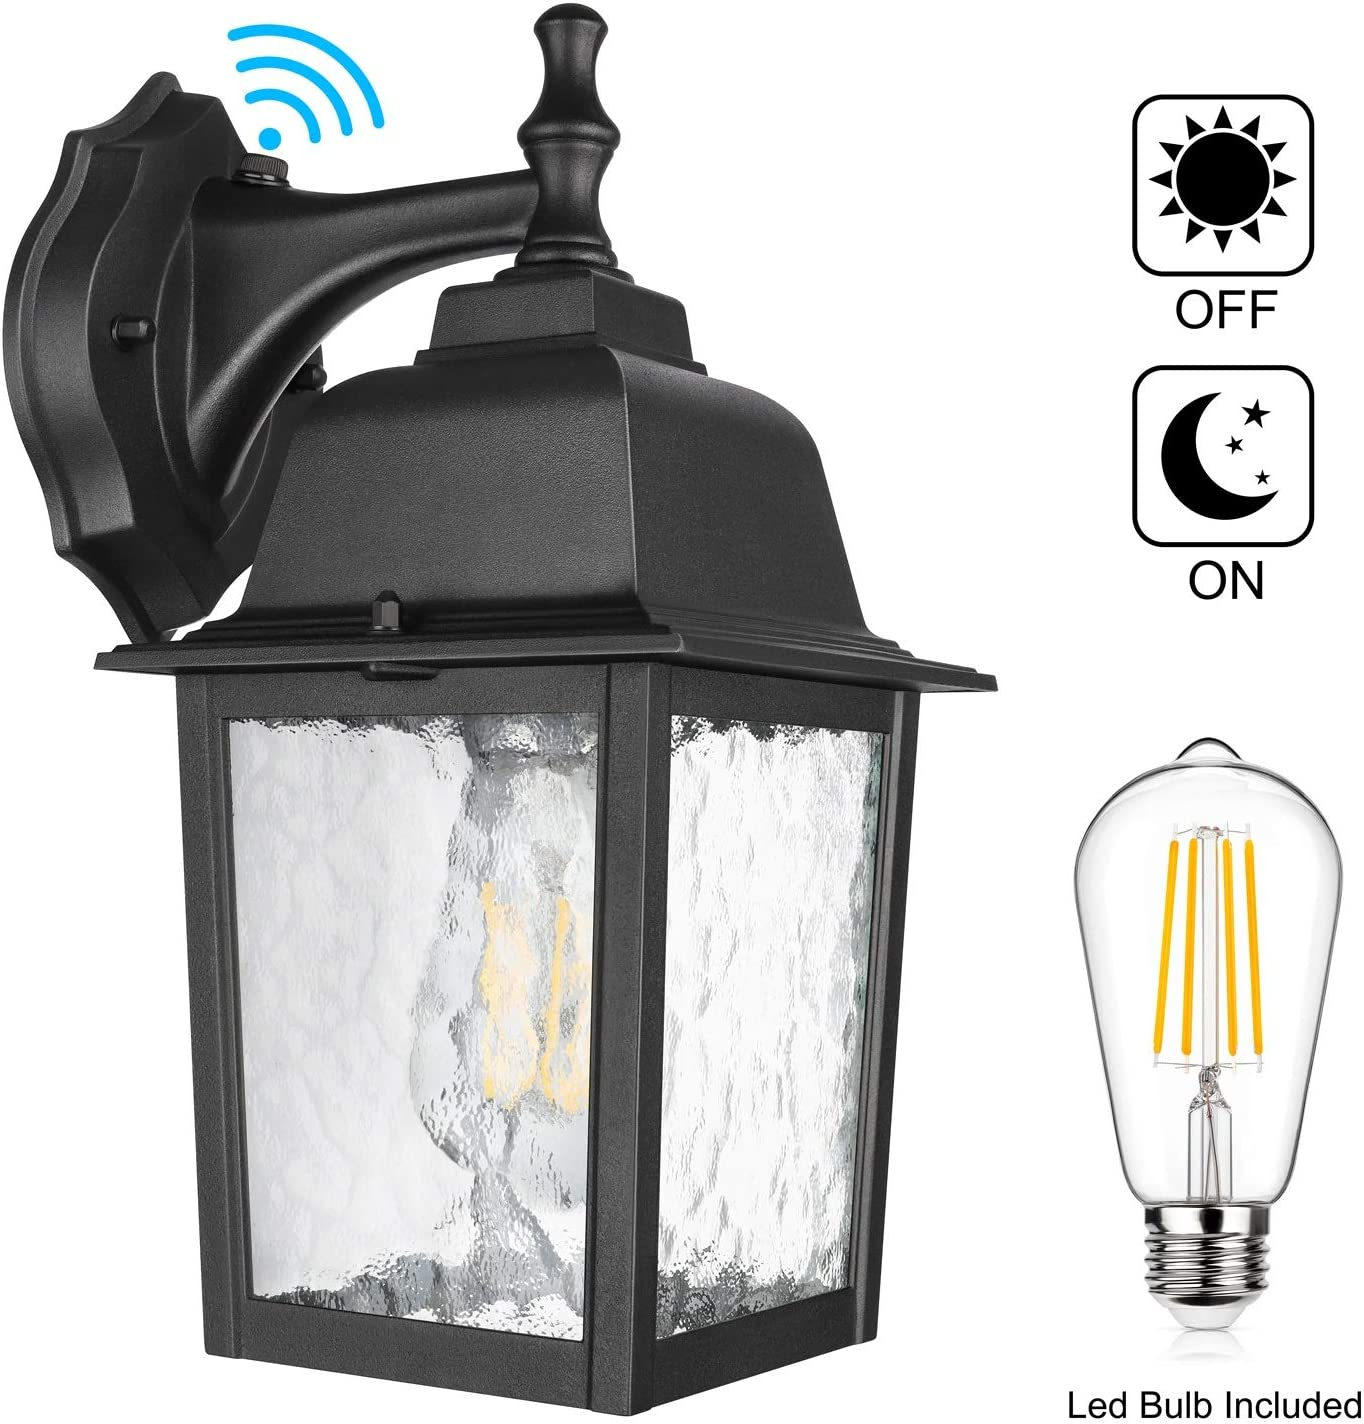 Dusk to Dawn Sensor Outdoor Wall Lantern Waterproof Exterior Wall Mount Lights, E26 LED Bulb Included, Anti-Rust Aluminum Matte Black Wall Sconce with Ripples Glass Shade for Garage, Patio, Hallway